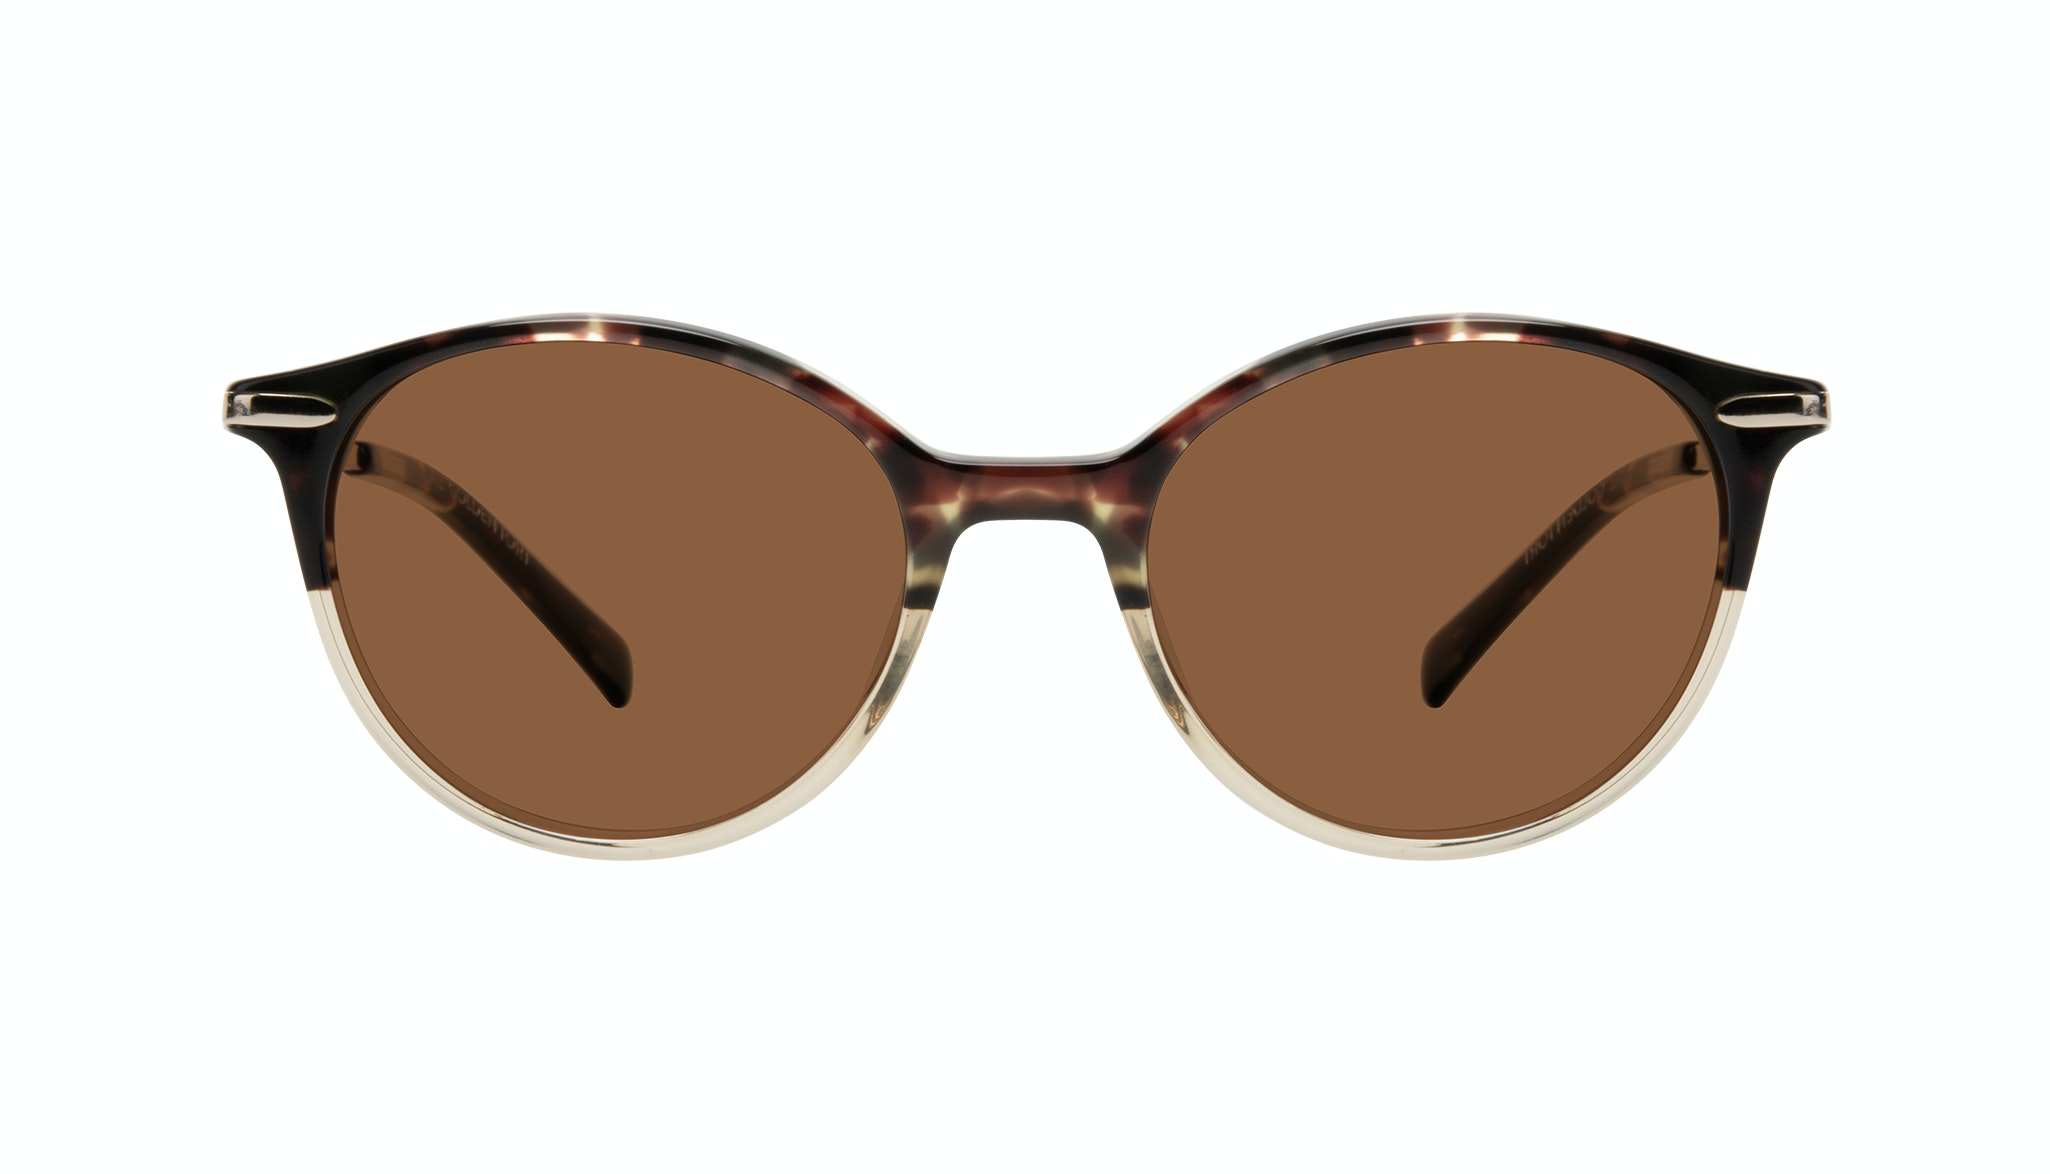 Affordable Fashion Glasses Round Sunglasses Women One Golden Tort Front